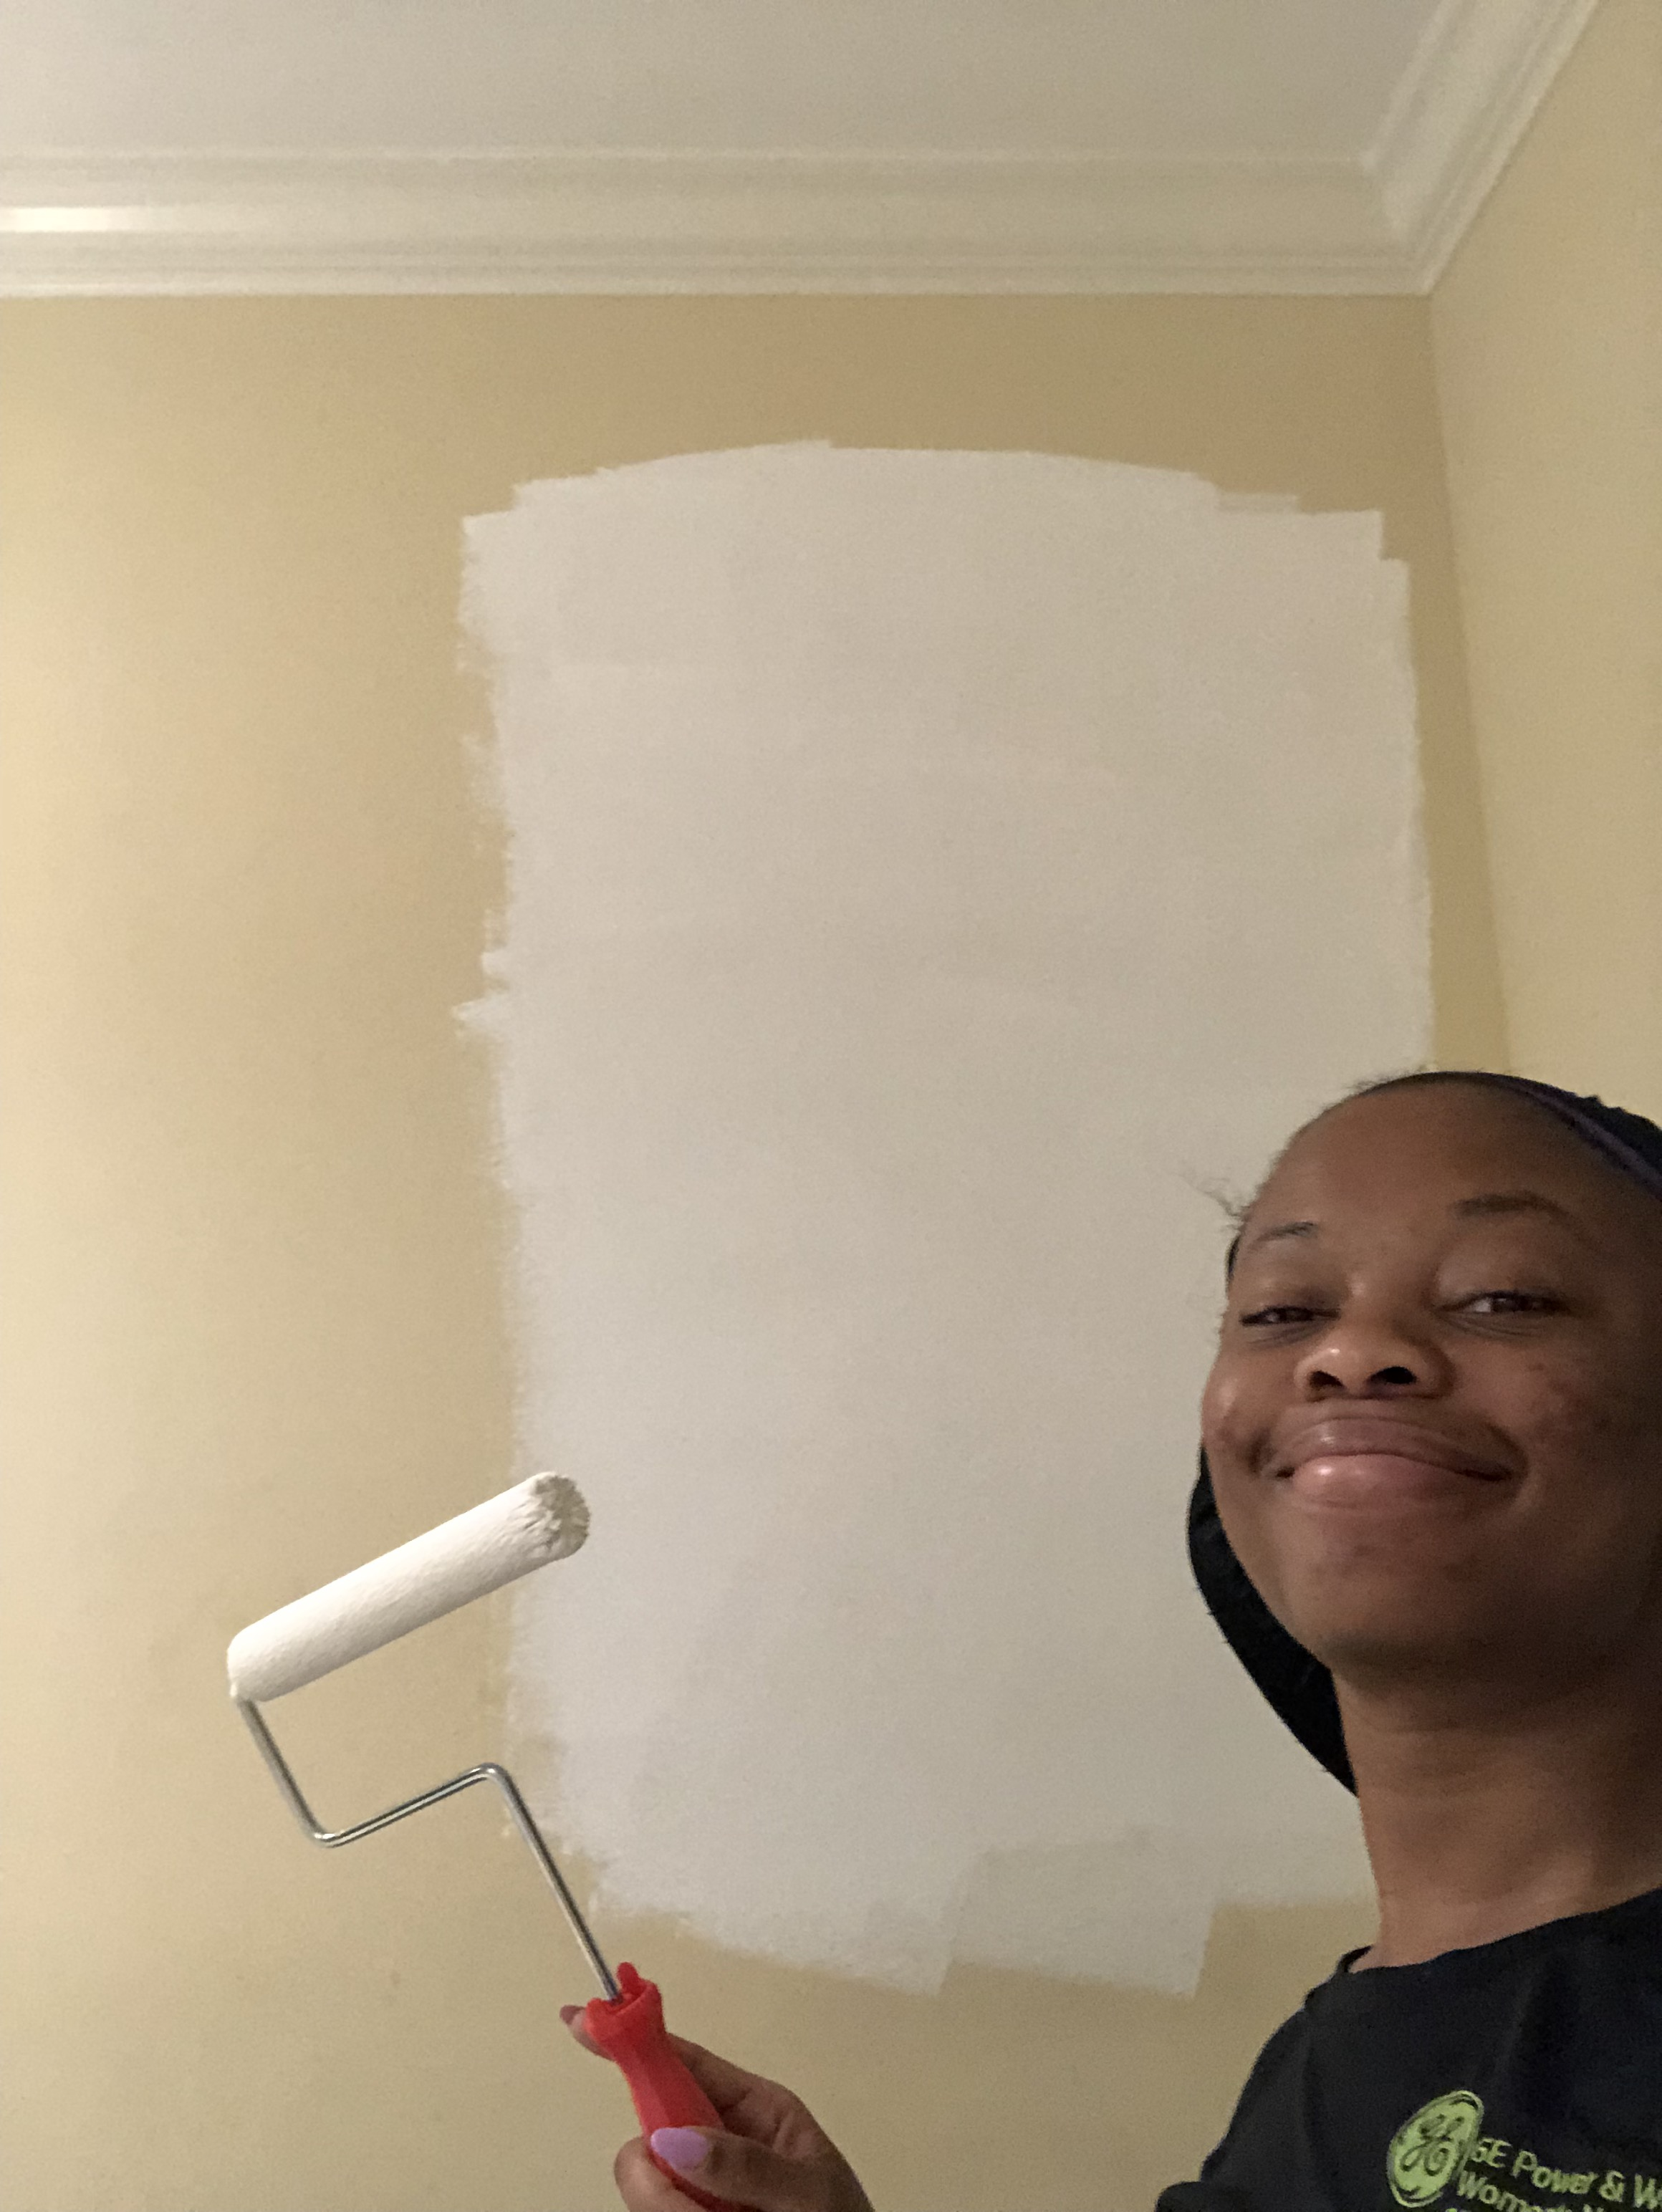 Taking a moment to appreciate the first few rolls of paint on the wall with a selfie.